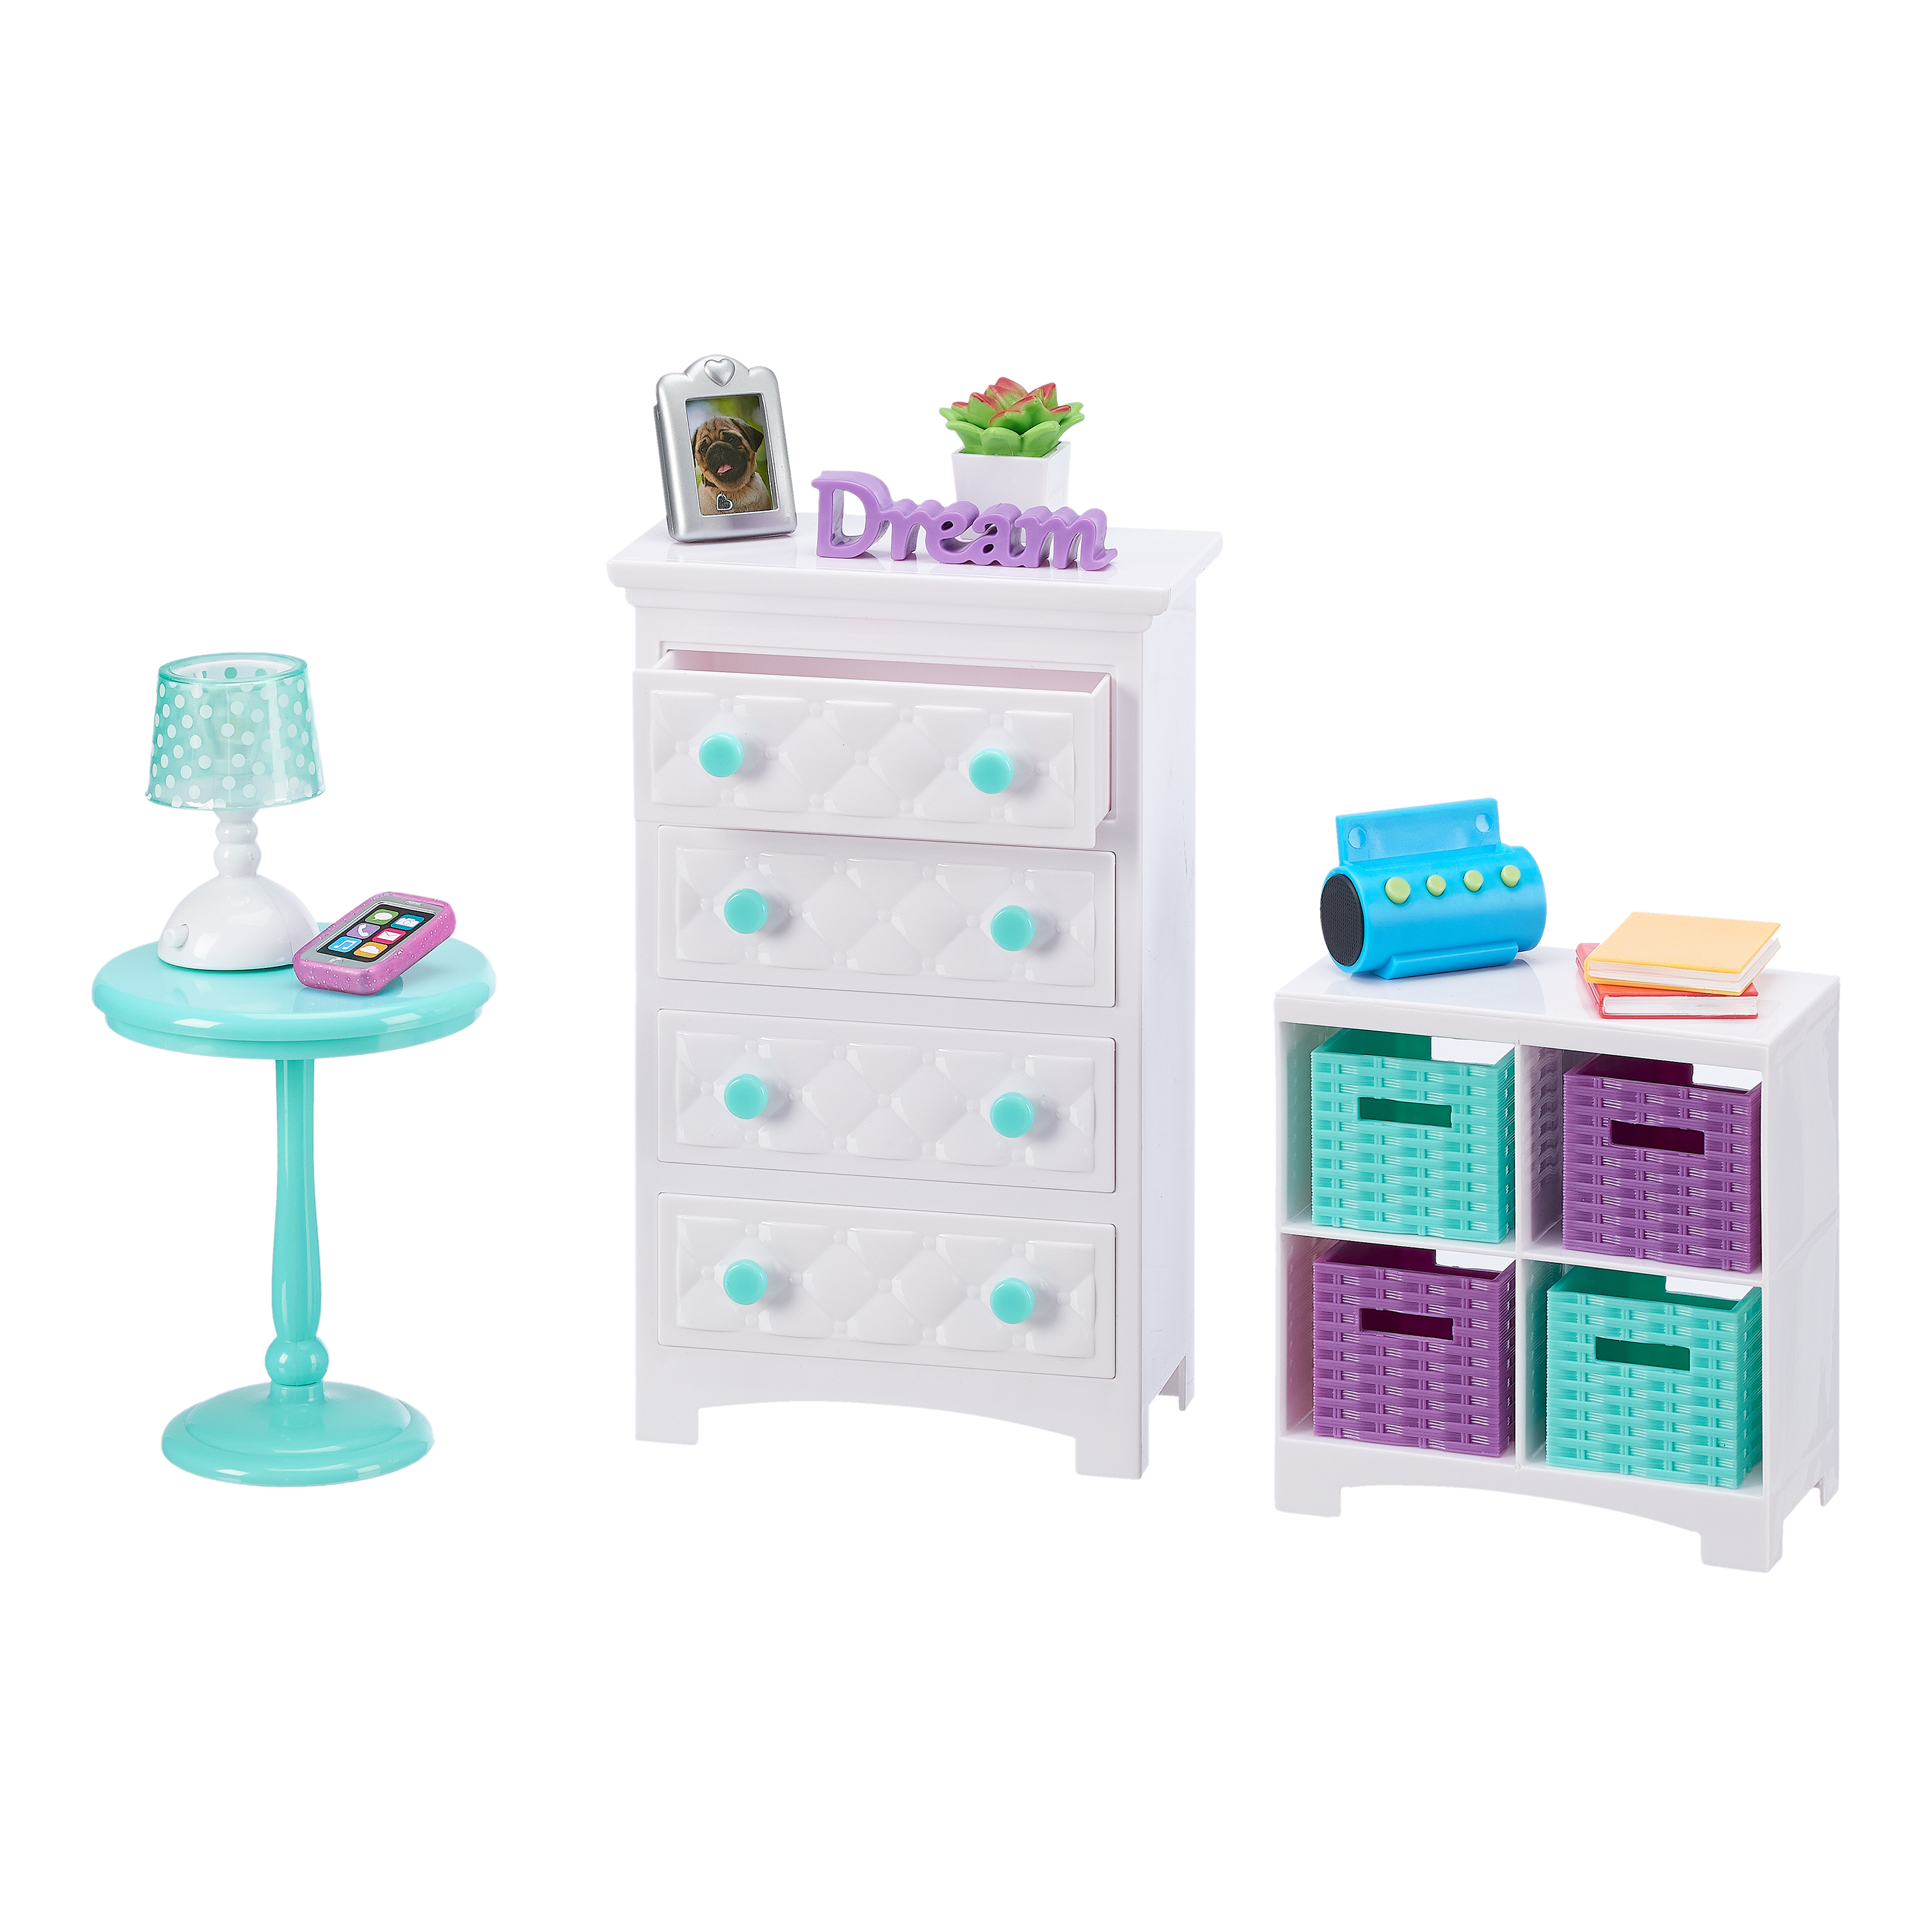 My Life As Bedroom Toy Accessories Play Set for 18-inch Dolls, 16 Pieces -  Walmart.com